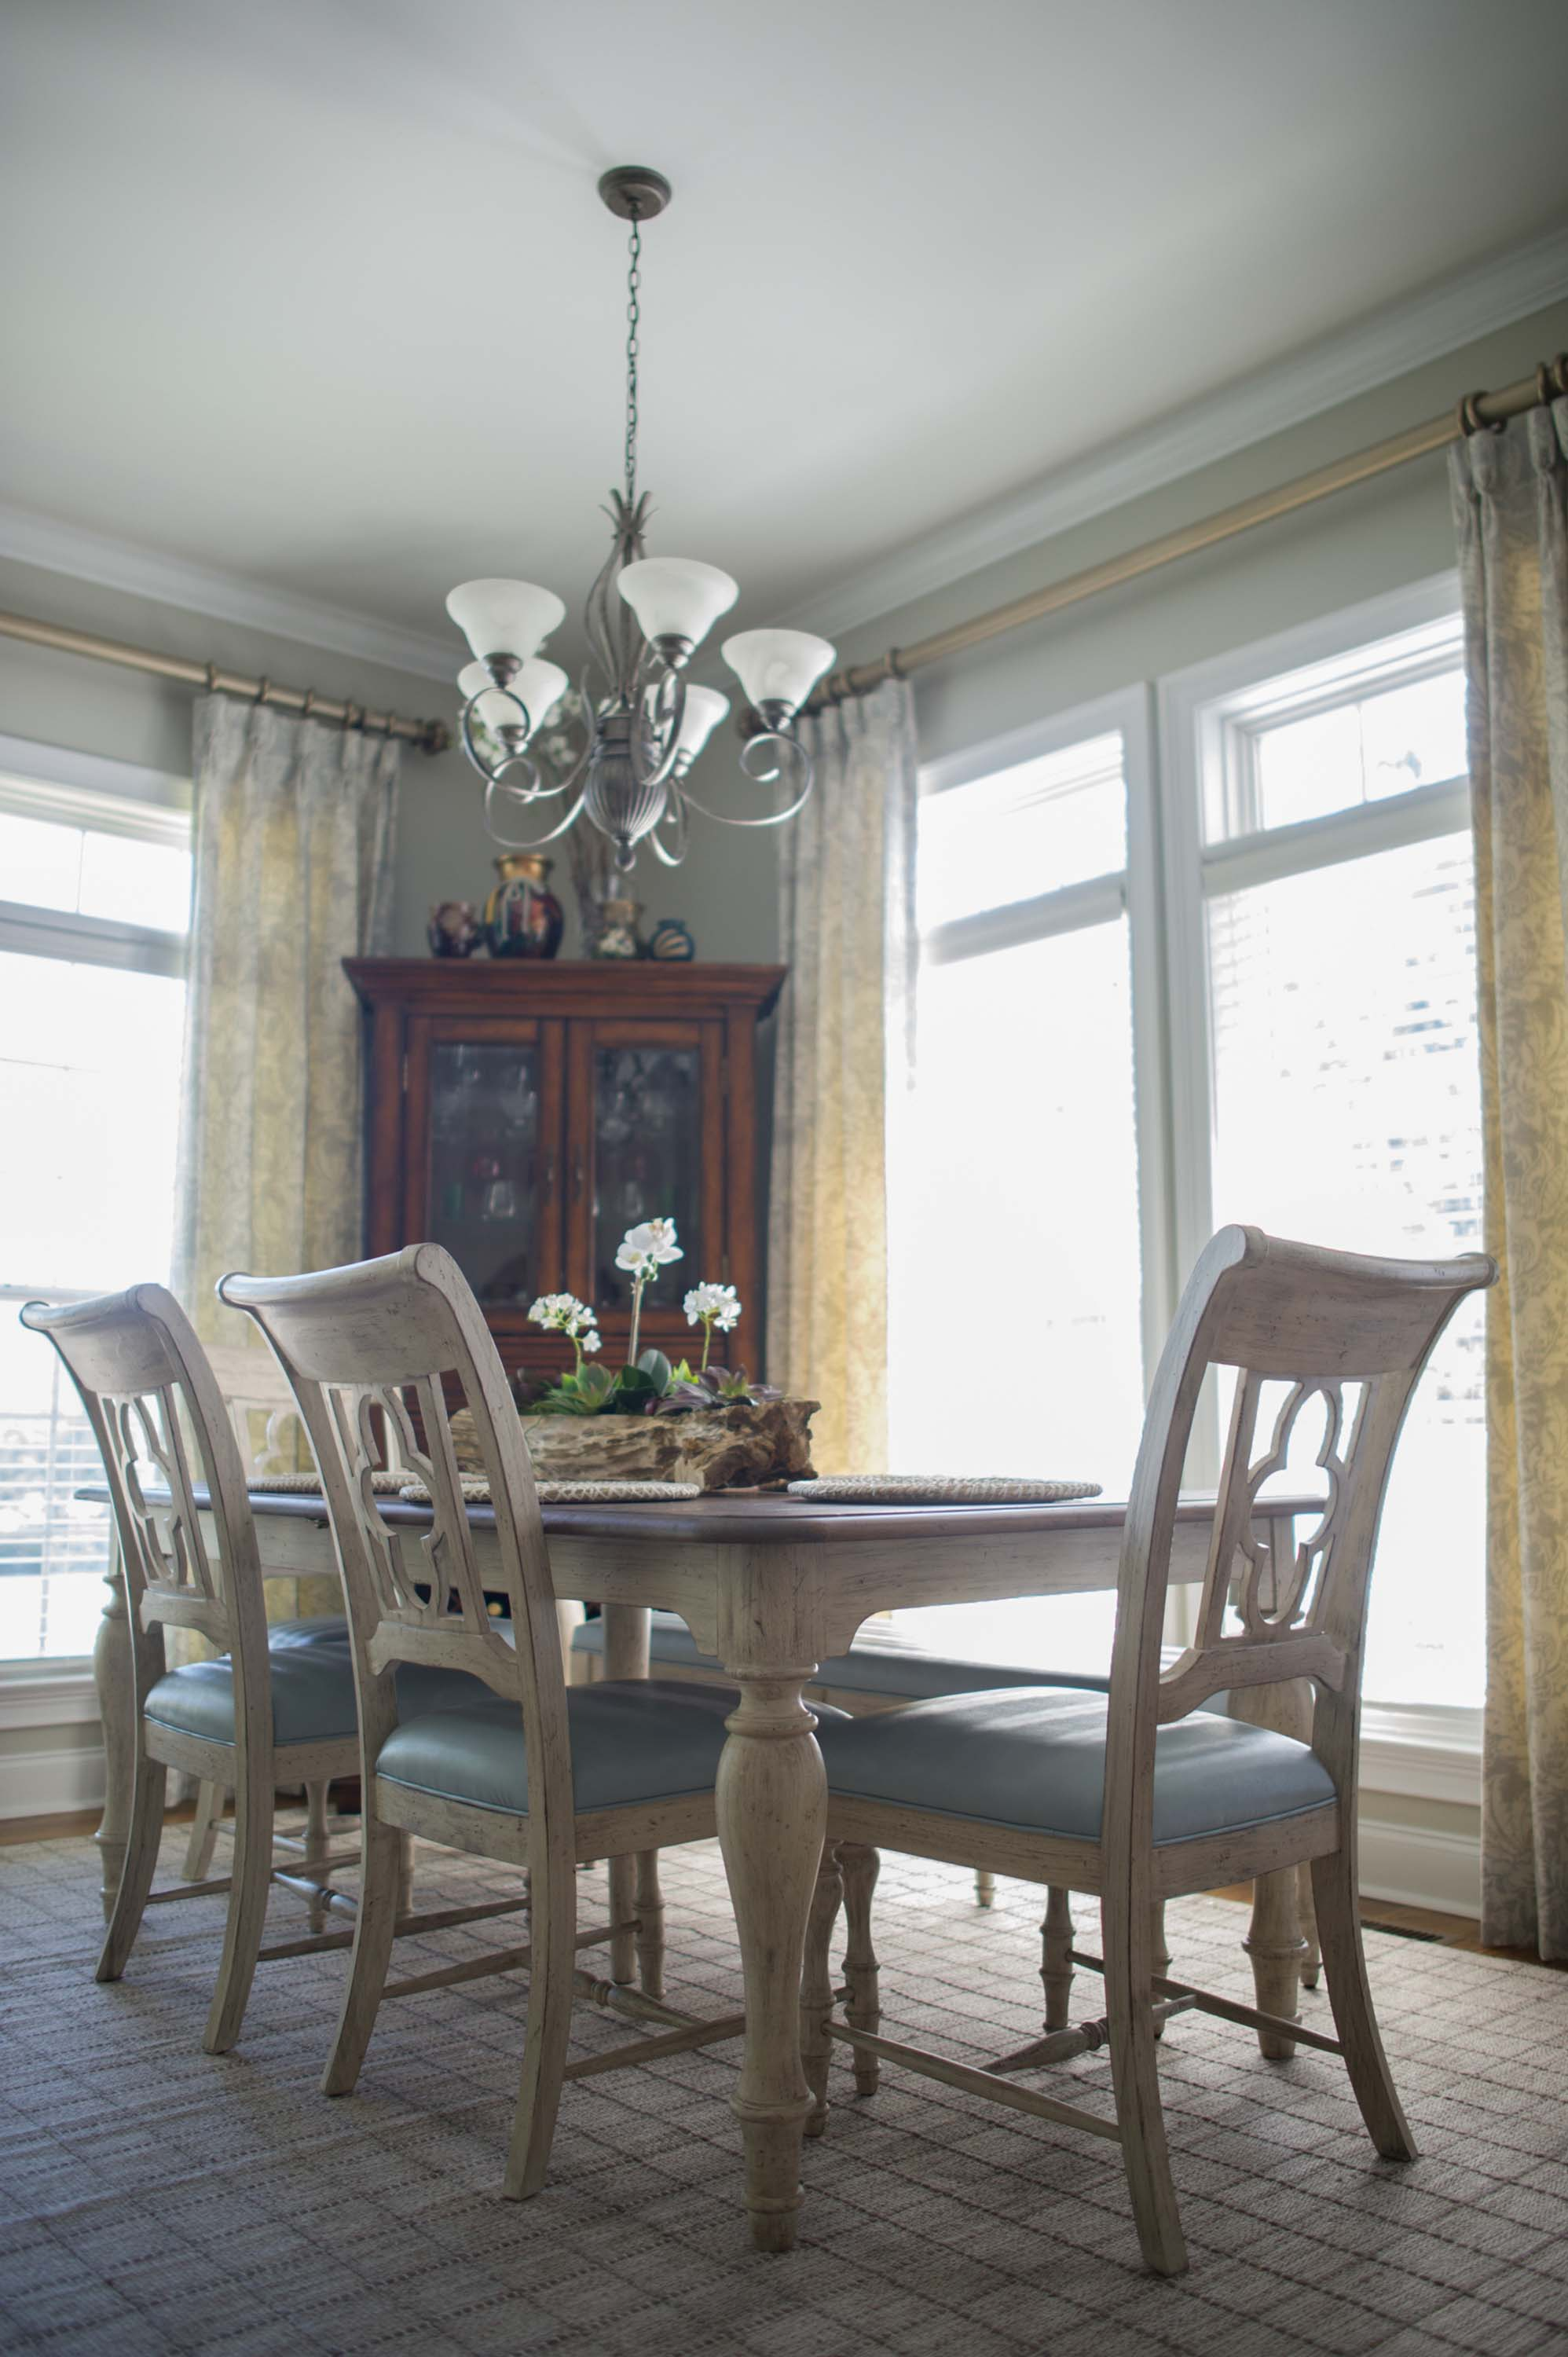 Dining room with wooden table, chair with soft seat and chandelier